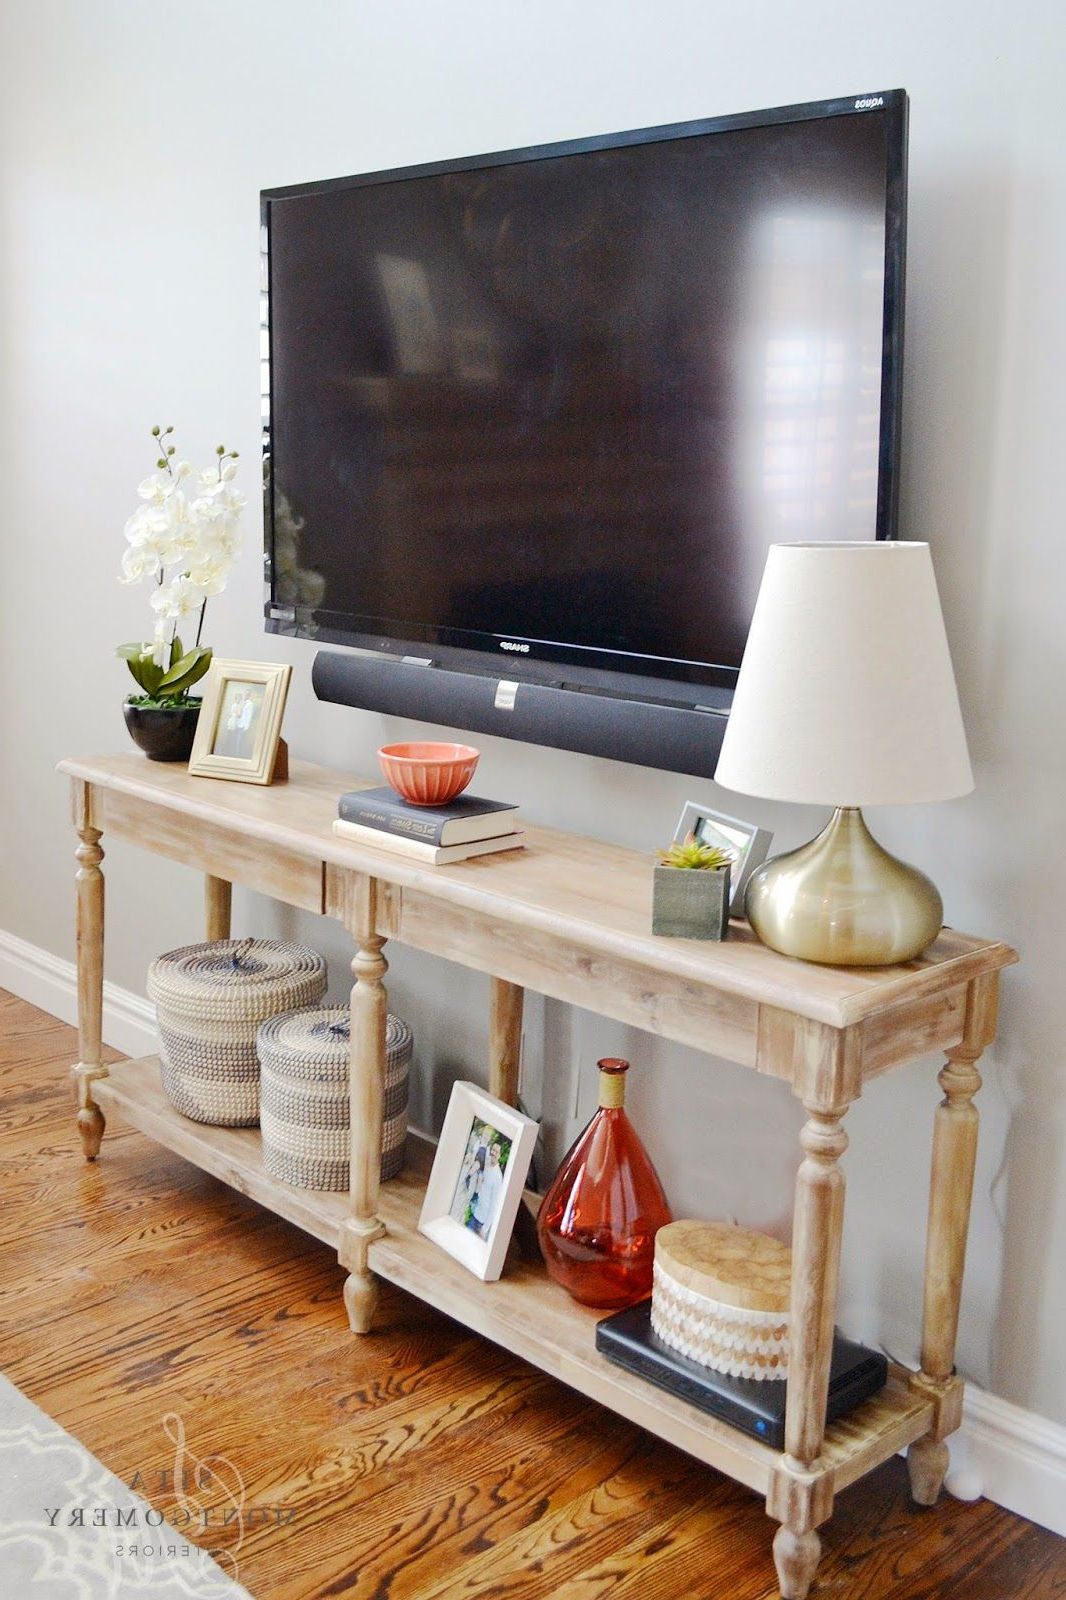 I Like The Use Of This Console Table As The Tv Stand | My Throughout Walters Media Console Tables (View 10 of 20)